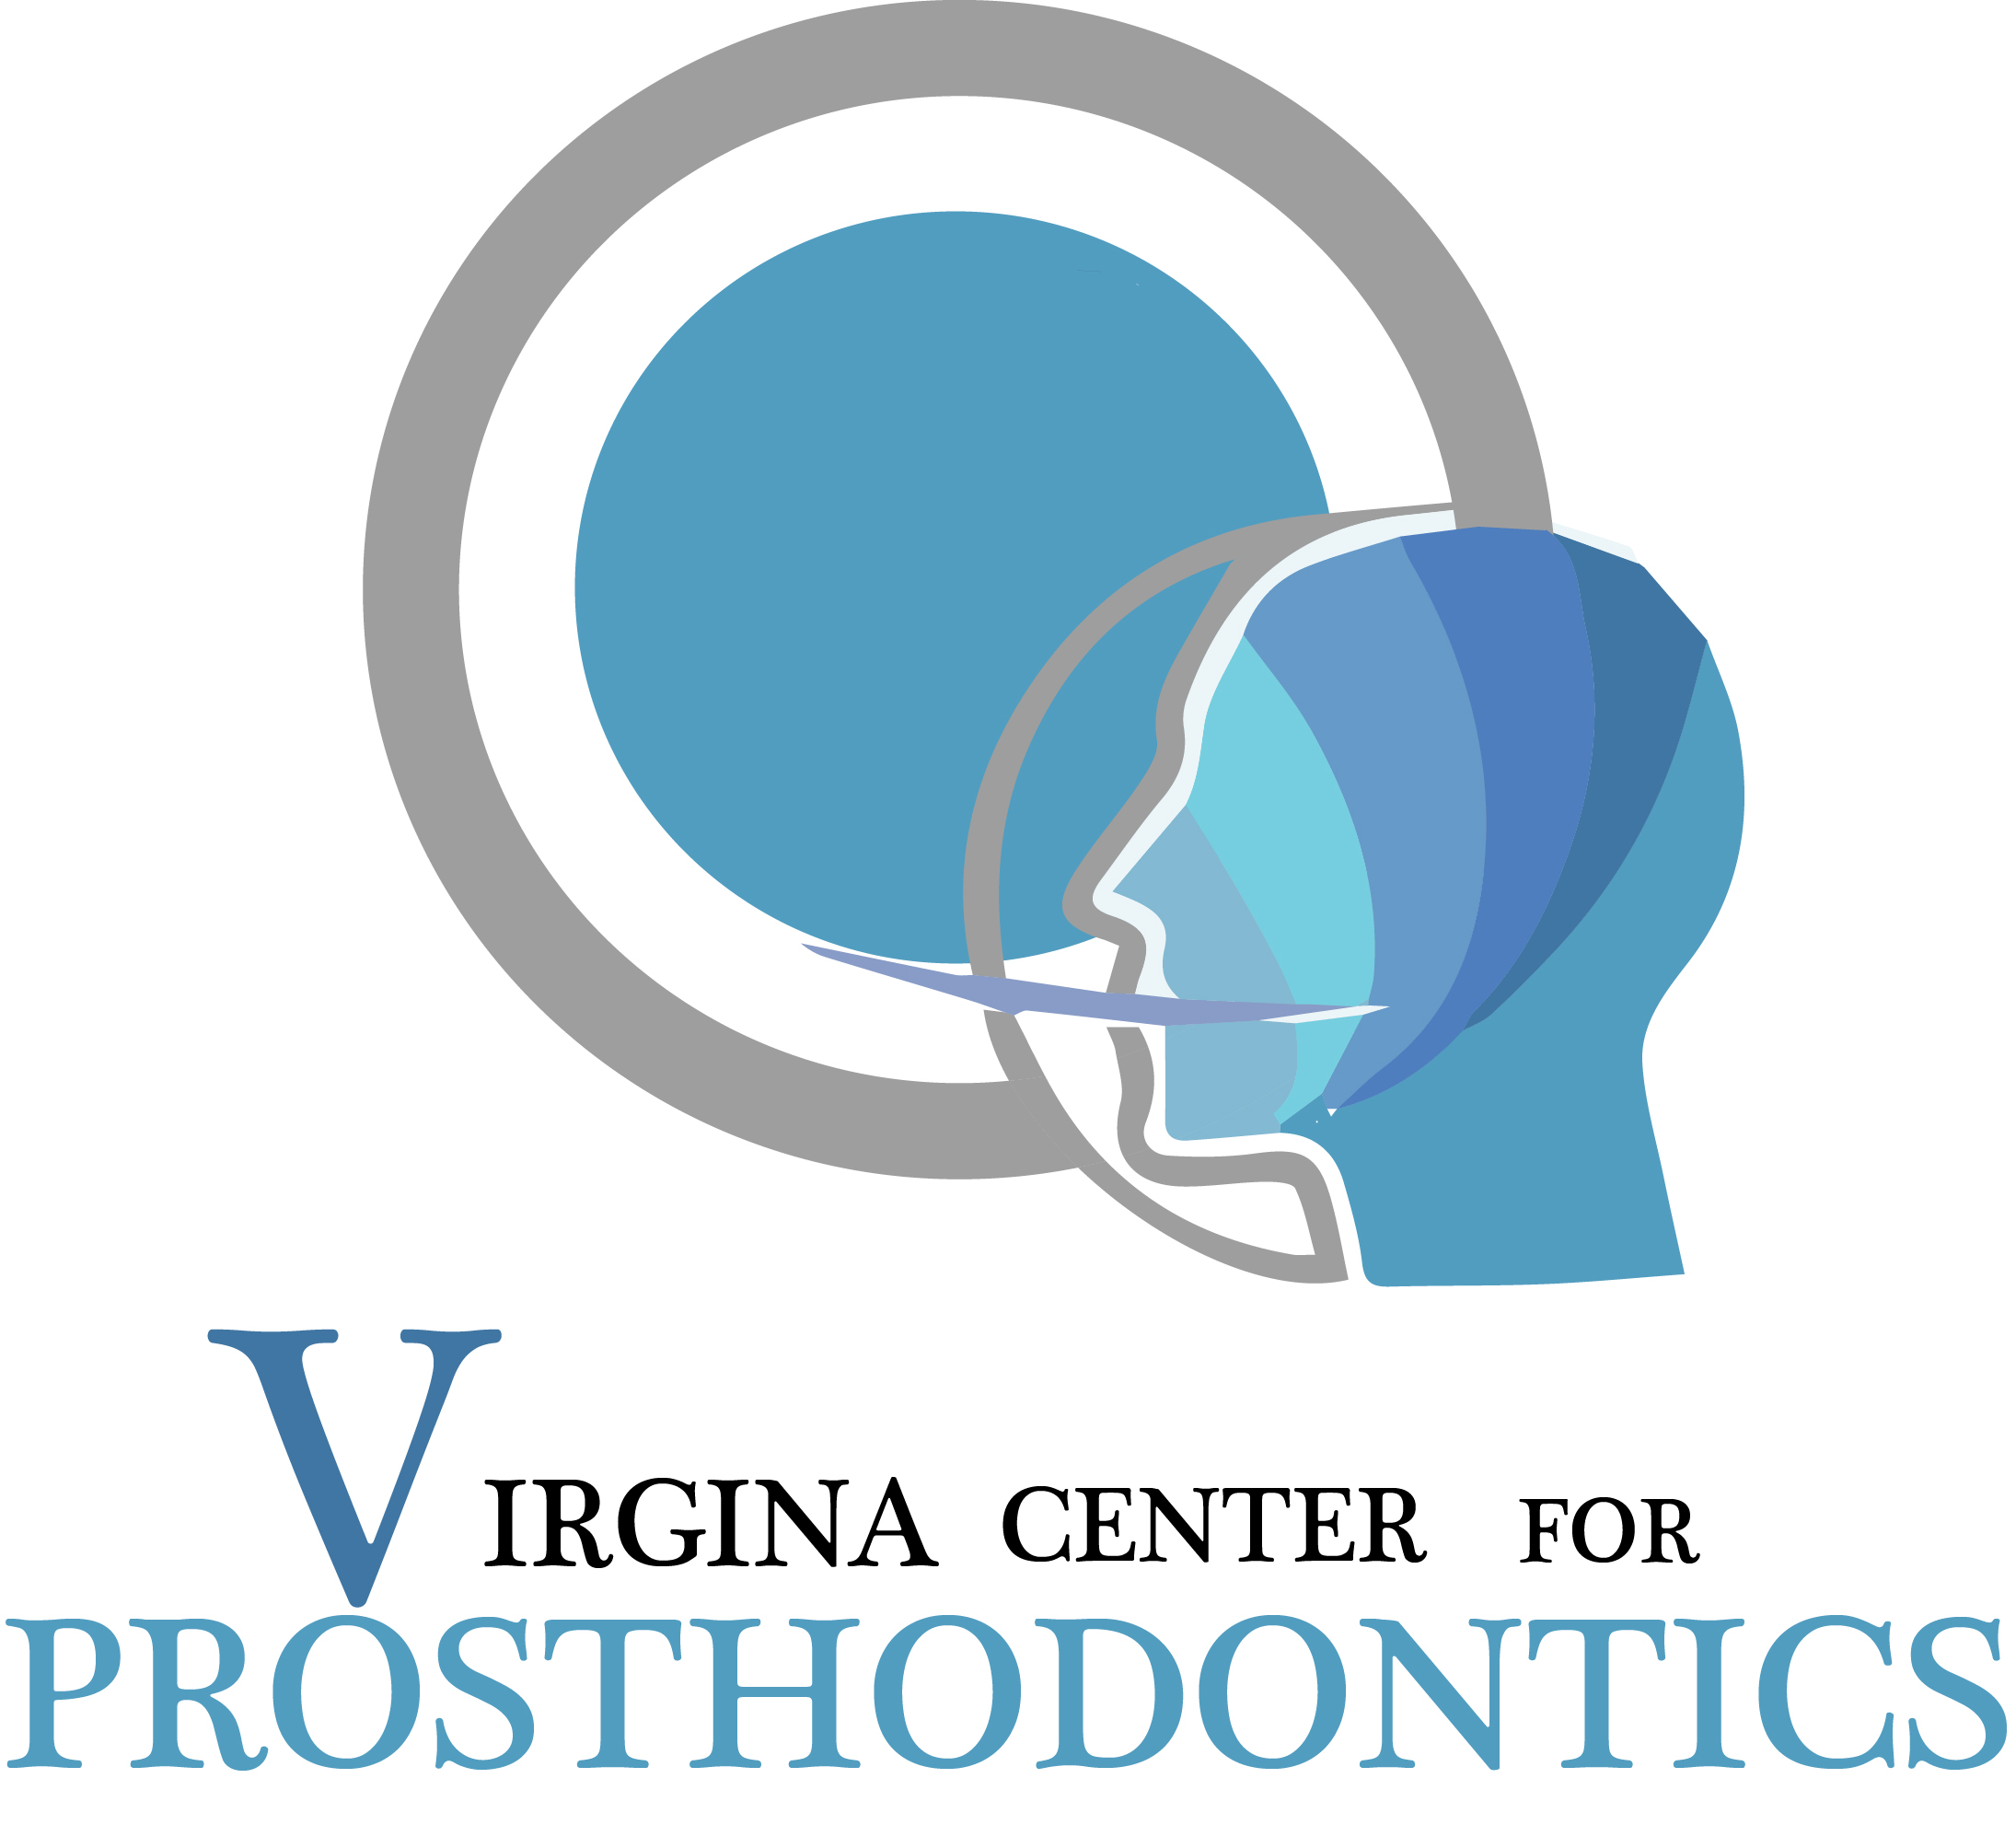 Logo Design by Business Ideas - Entry No. 94 in the Logo Design Contest Imaginative Logo Design for Virginia Center for Prosthodontics.